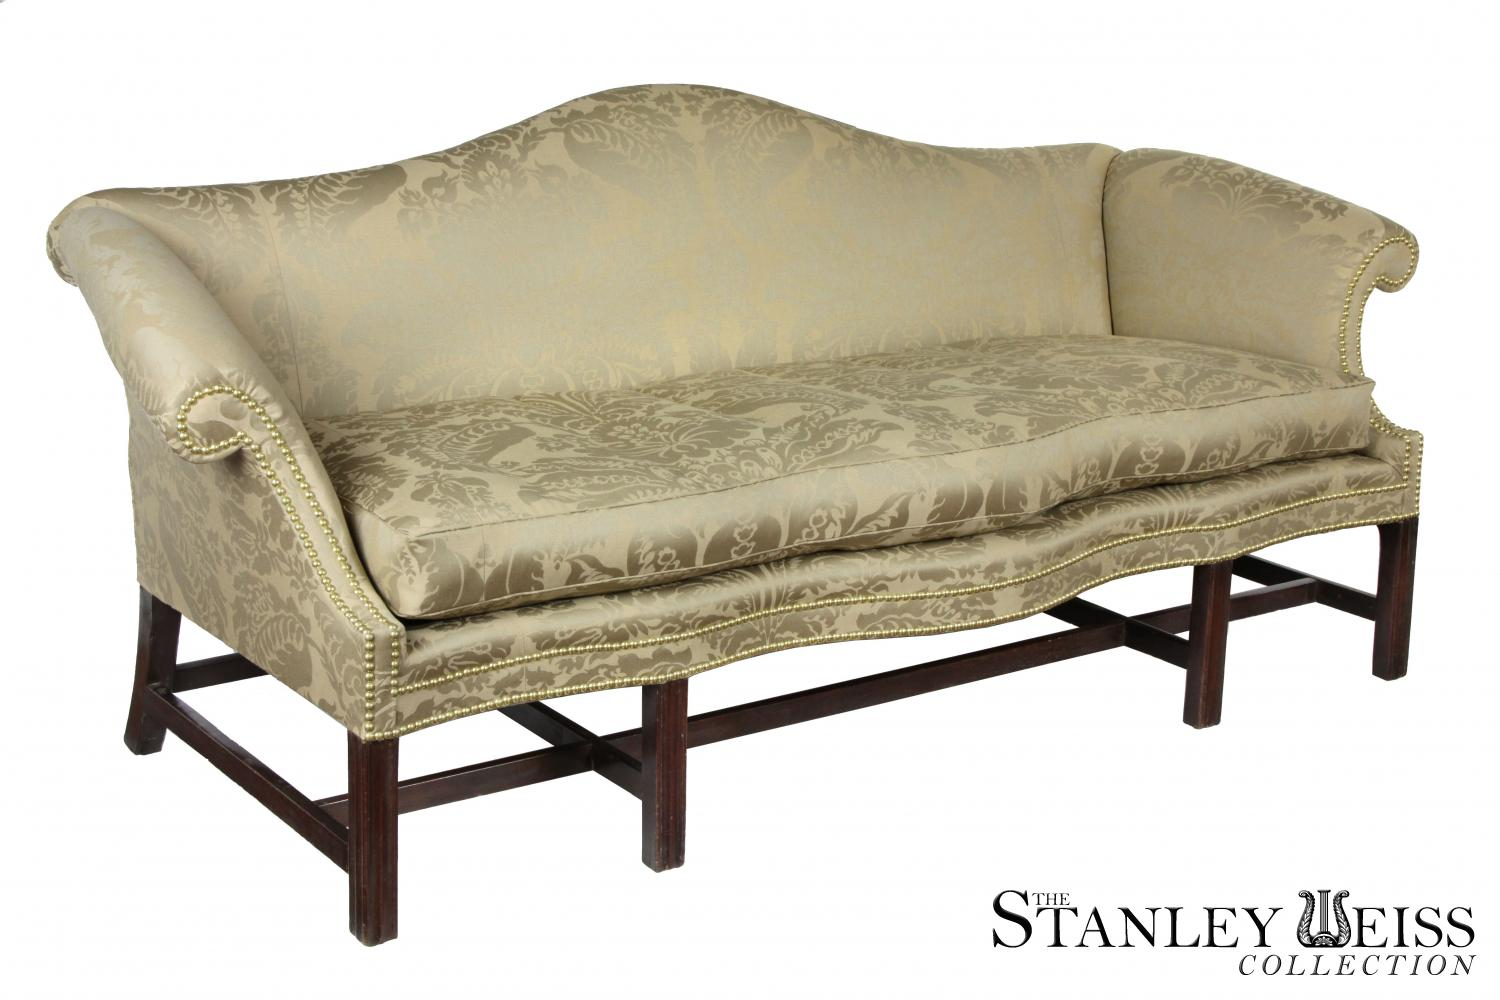 A Fine Chippendale / Federal Mahogany Camelback Sofa With A Rare Double  Serpentine Rail, Philadelphia, C.1780 1800